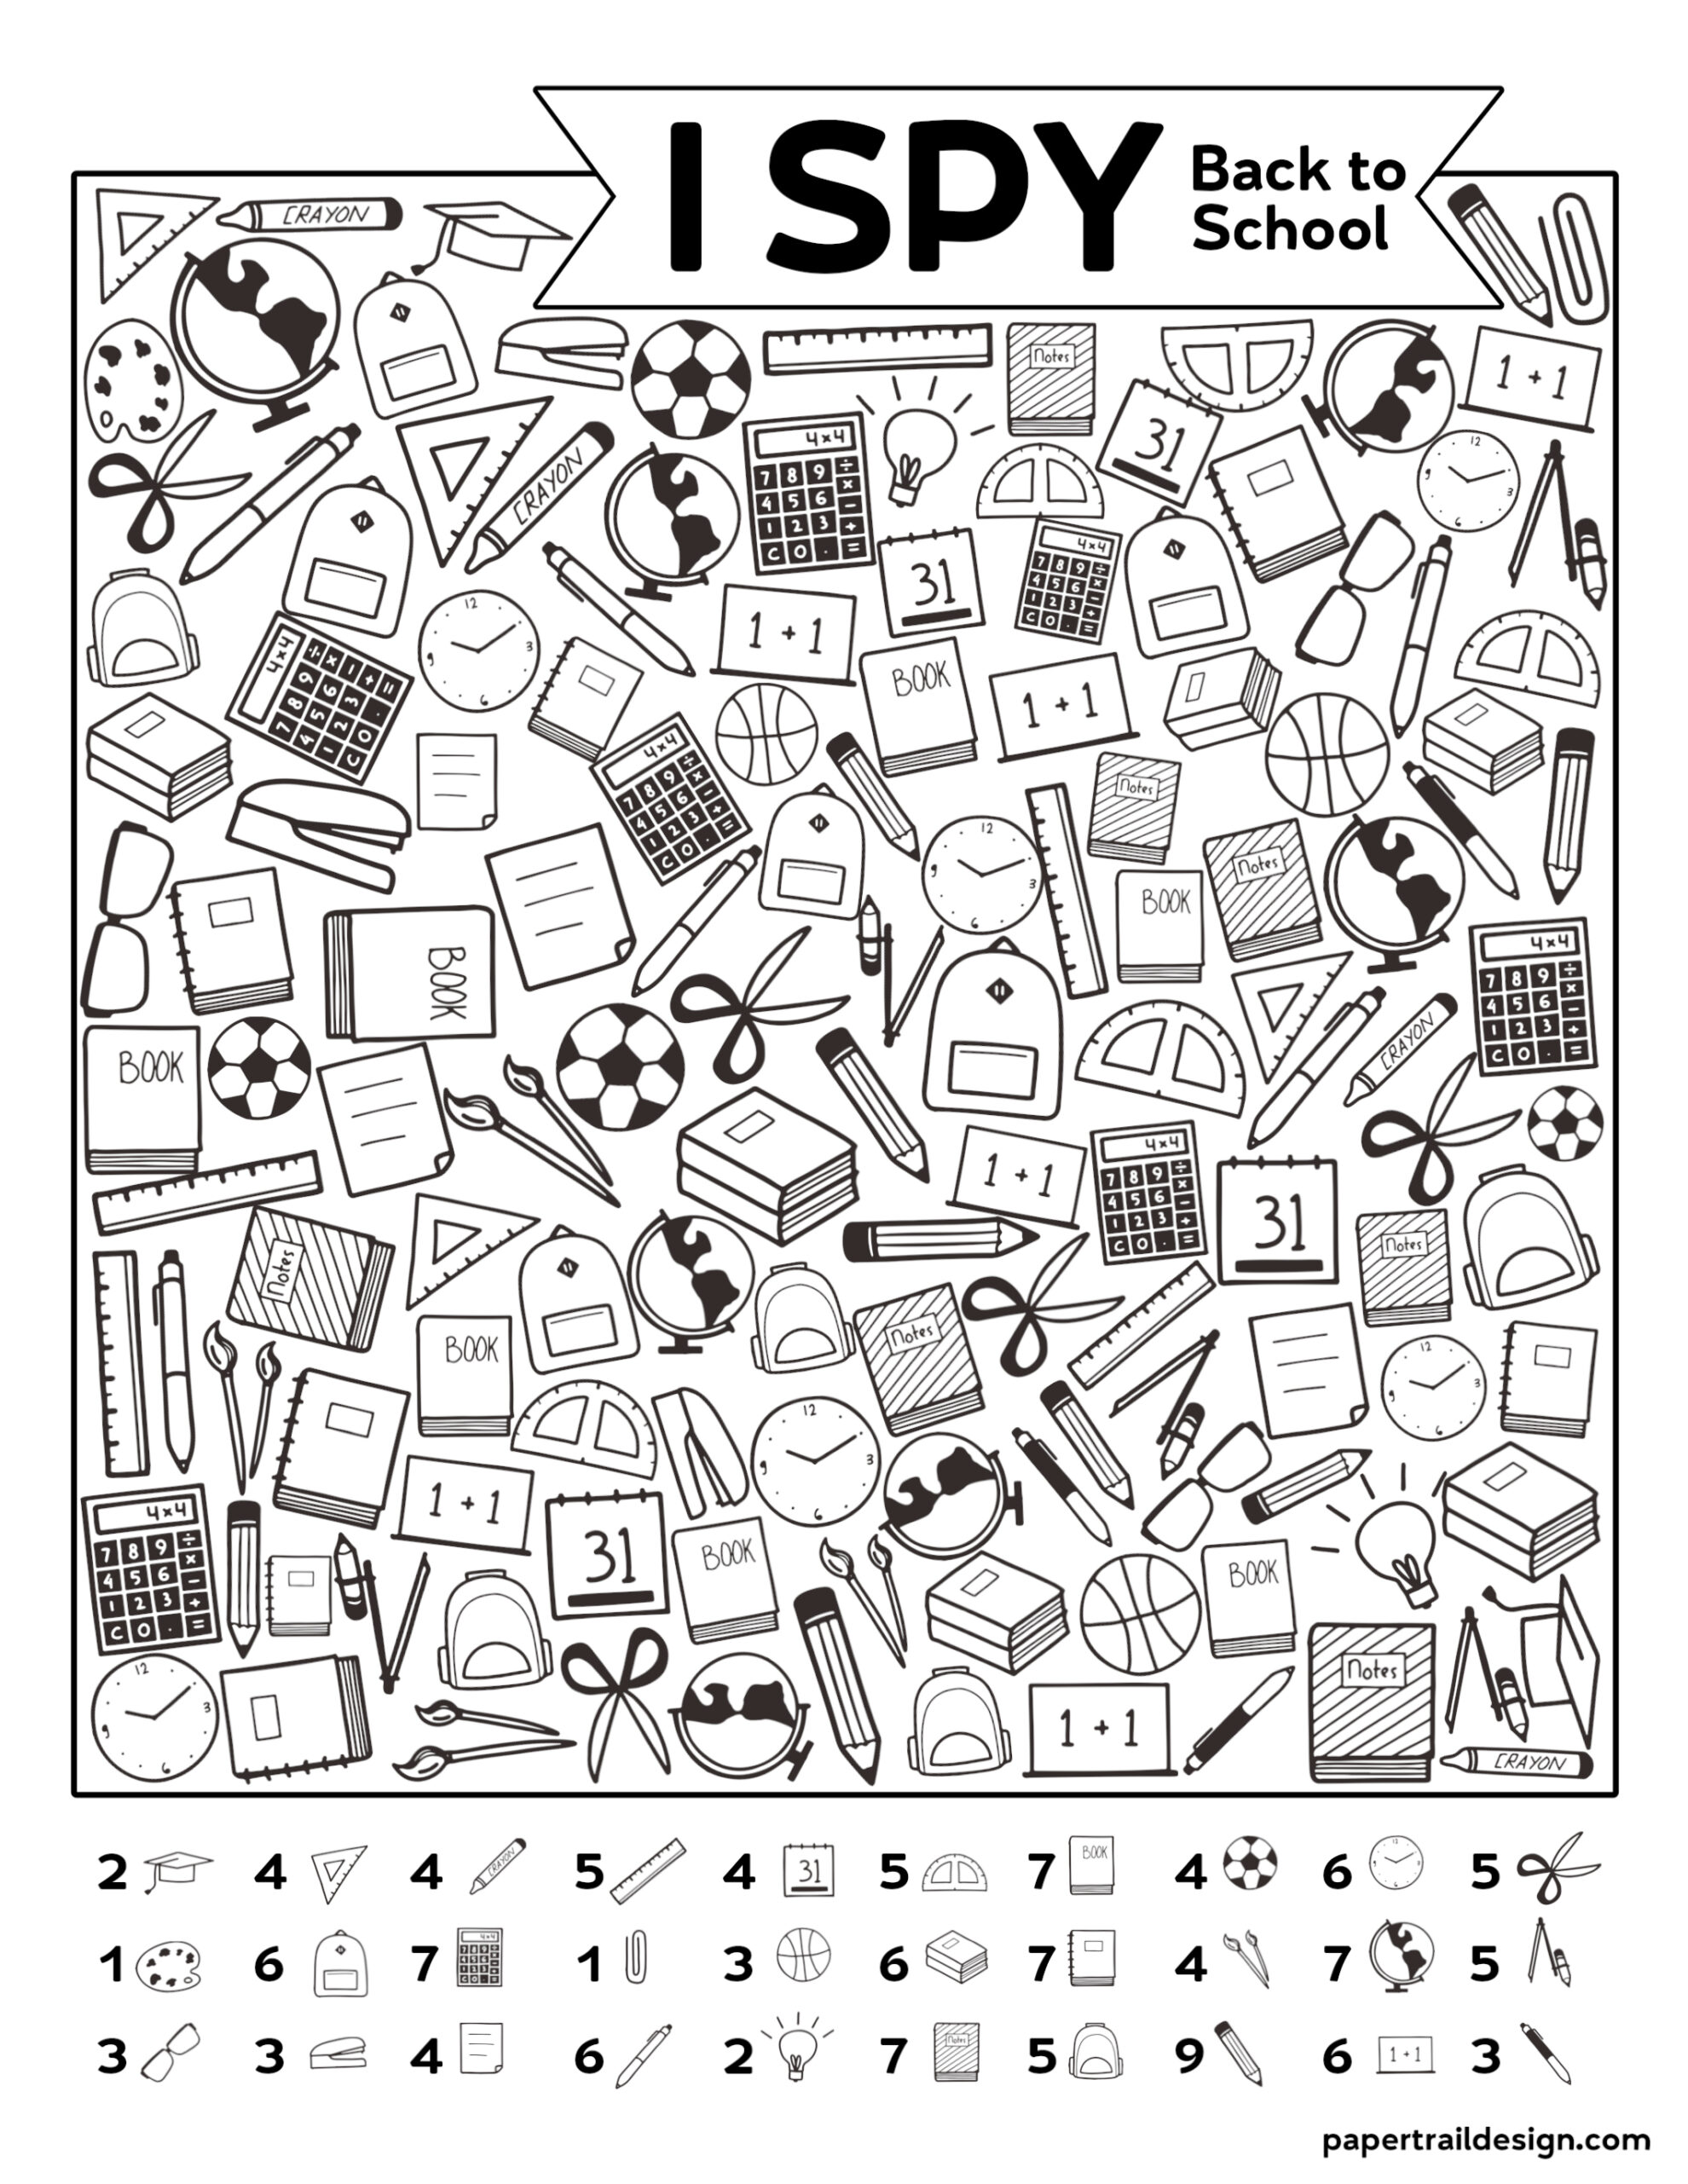 Free Printable I Spy Back To School Activity